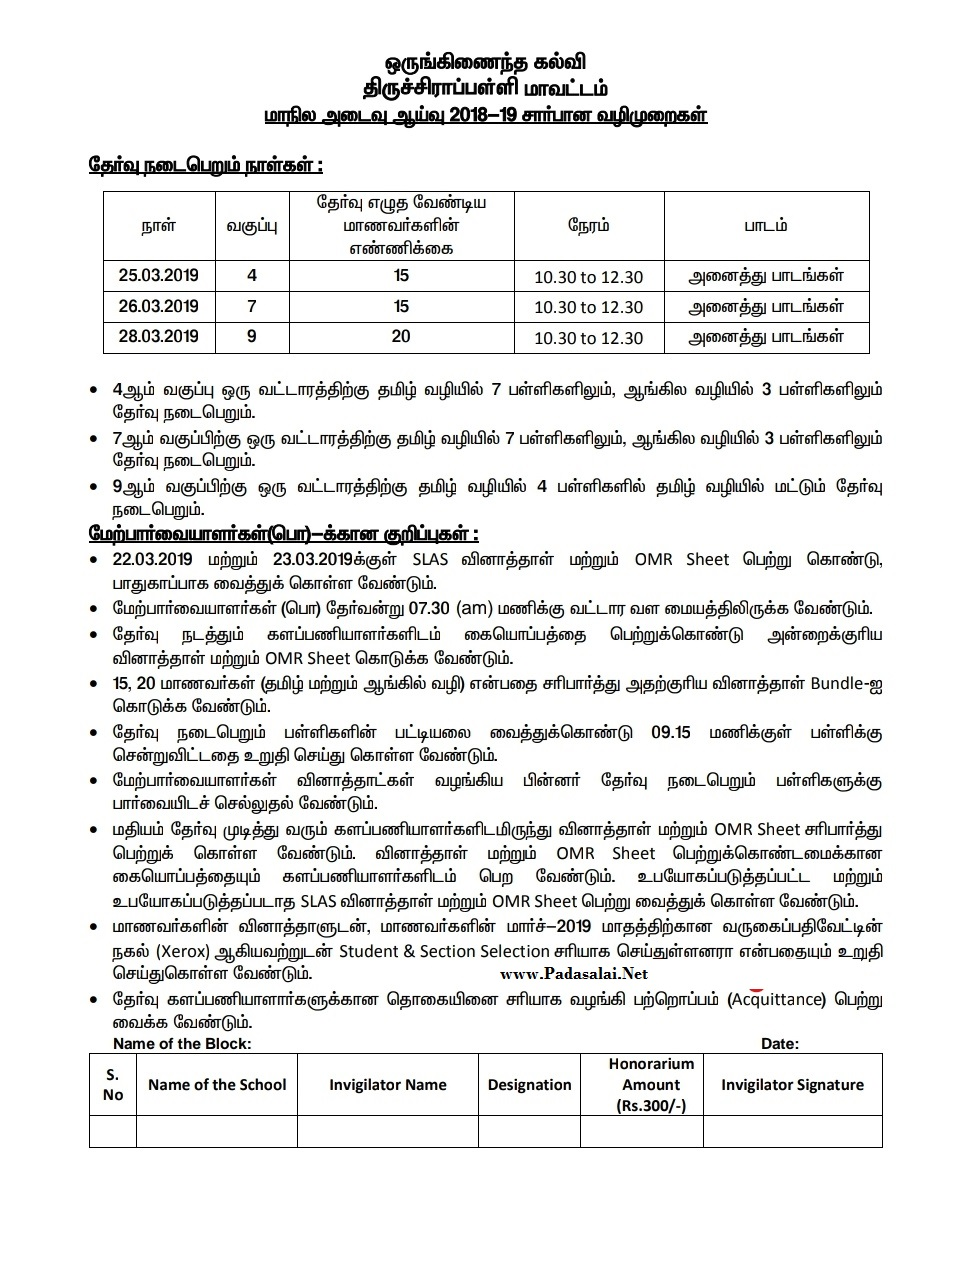 SLAS 2019 - Student & Question Paper Selection, Seating